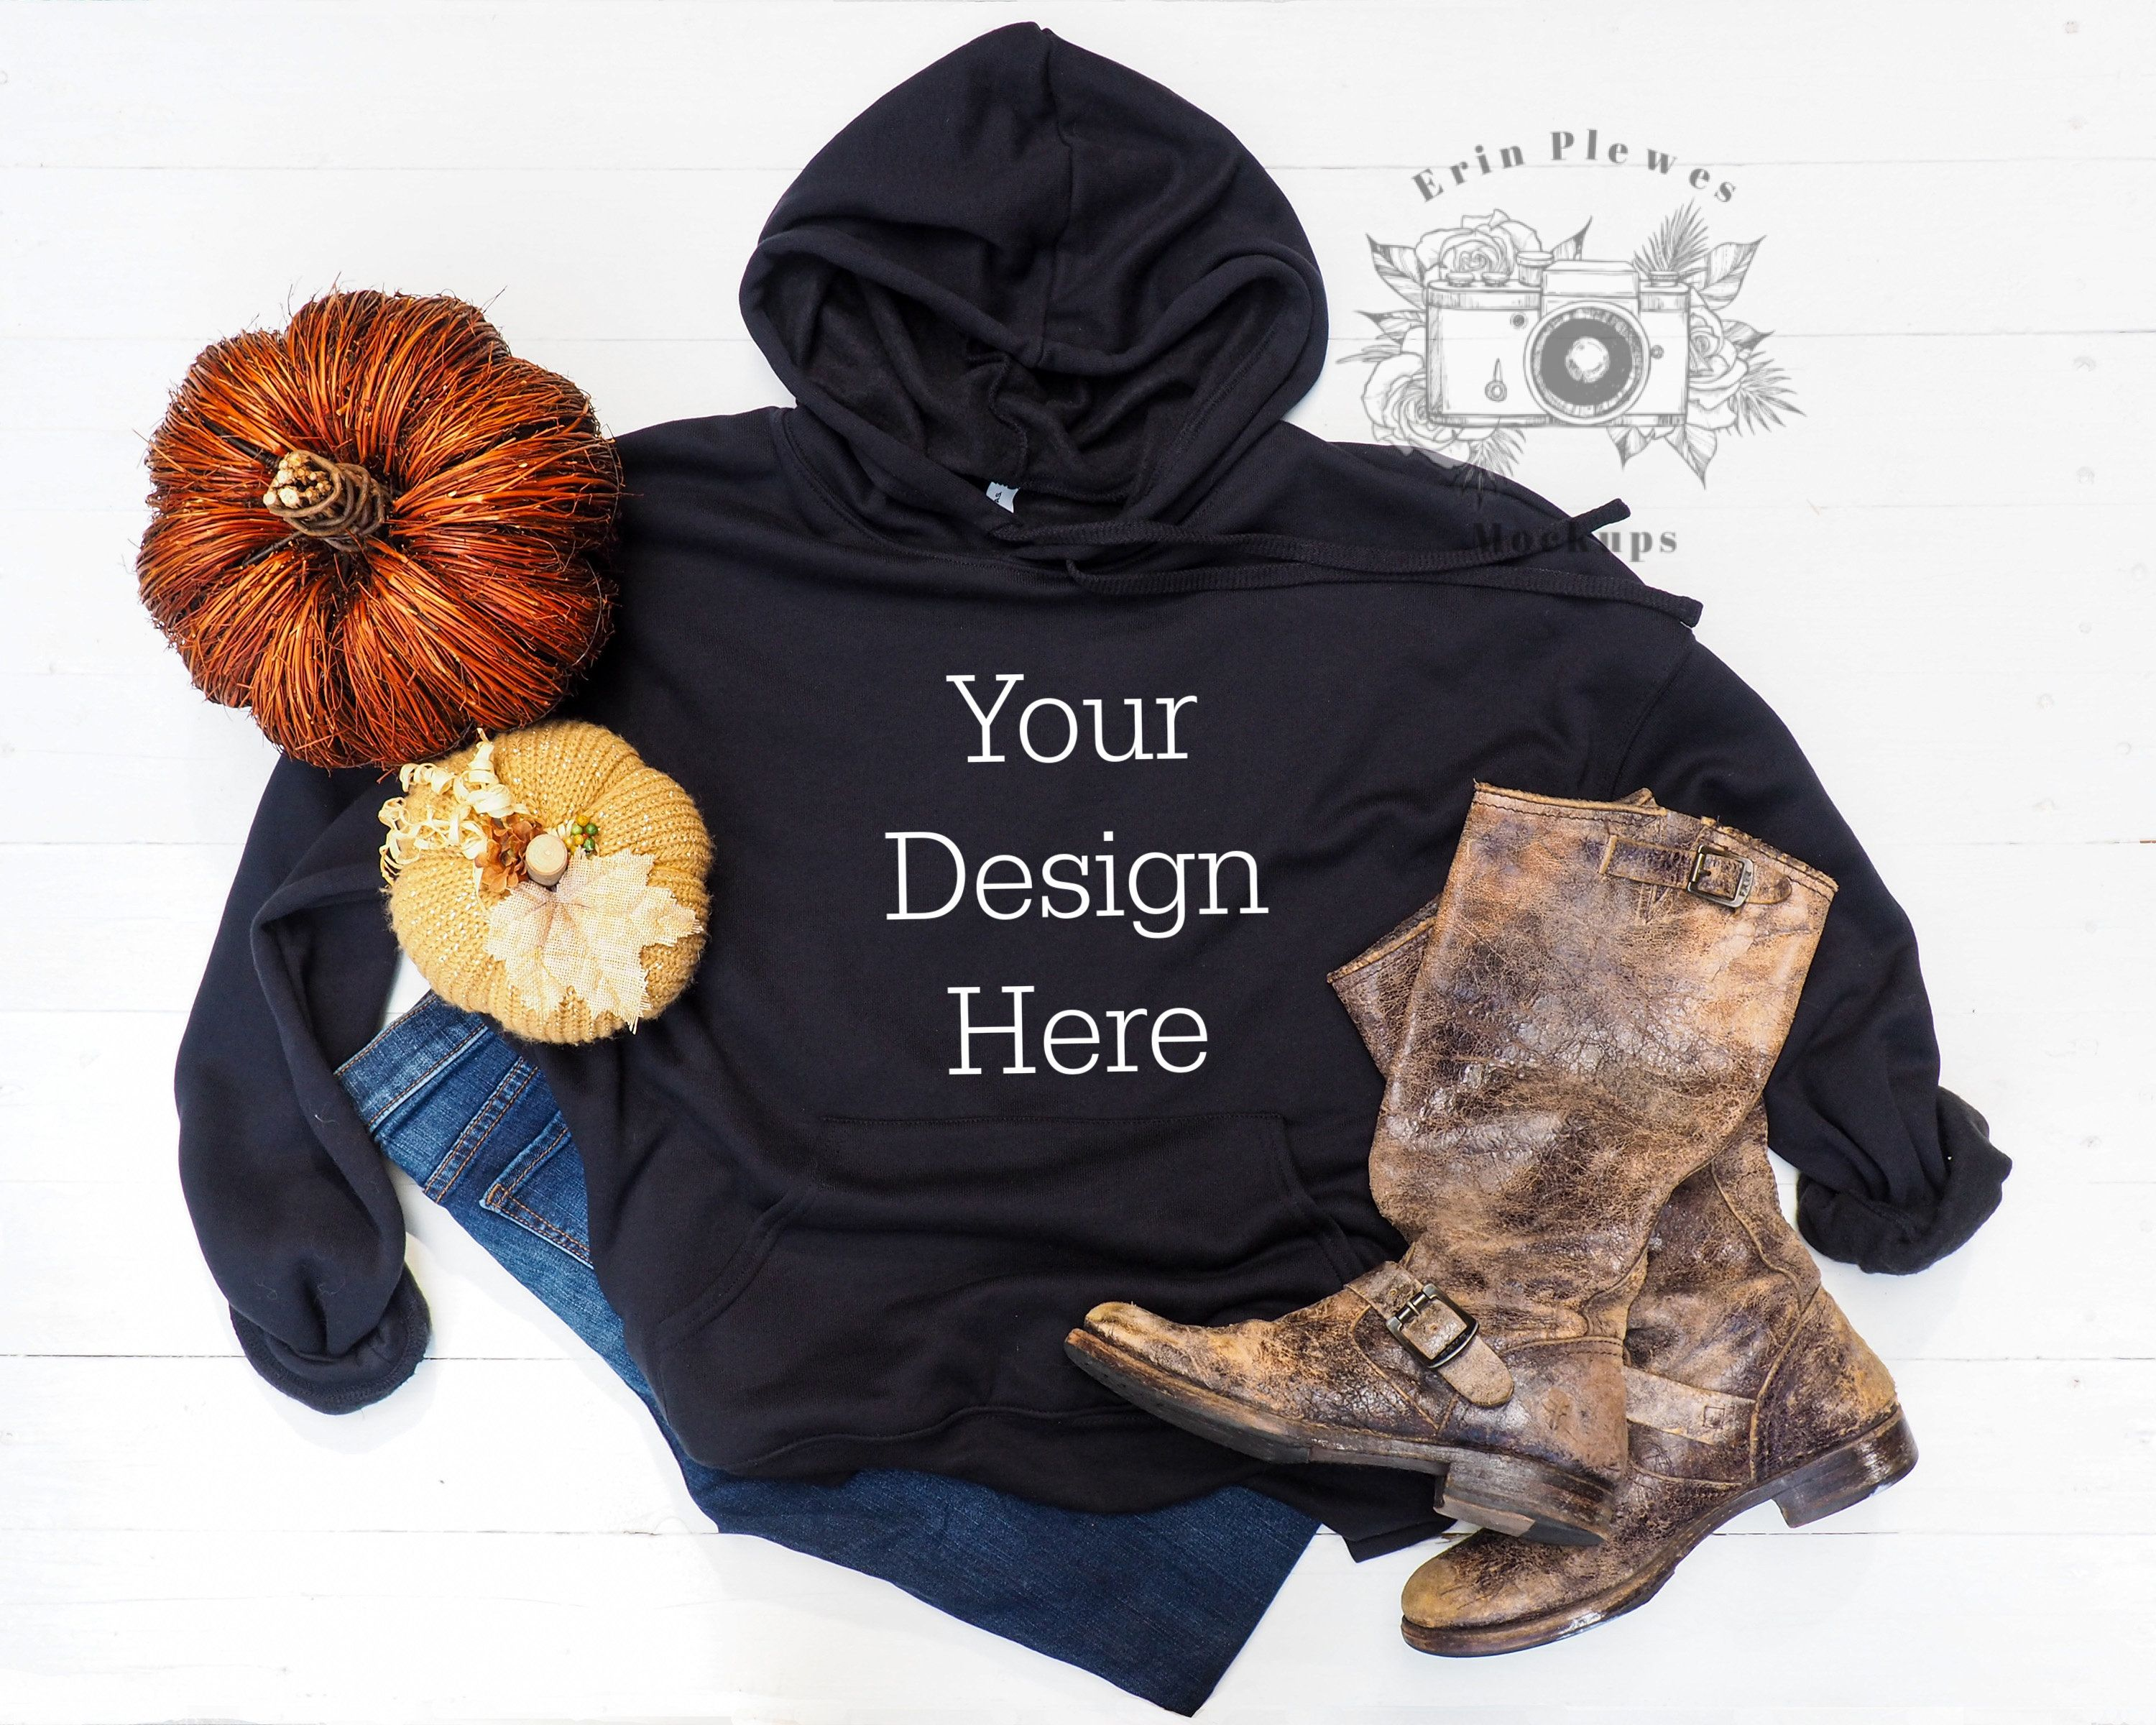 Download Bella Canvas Hoodie Mockup Sweatshirt Mockup Flat Lay With Etsy Hoodie Mockup Sweatshirts Hoodies